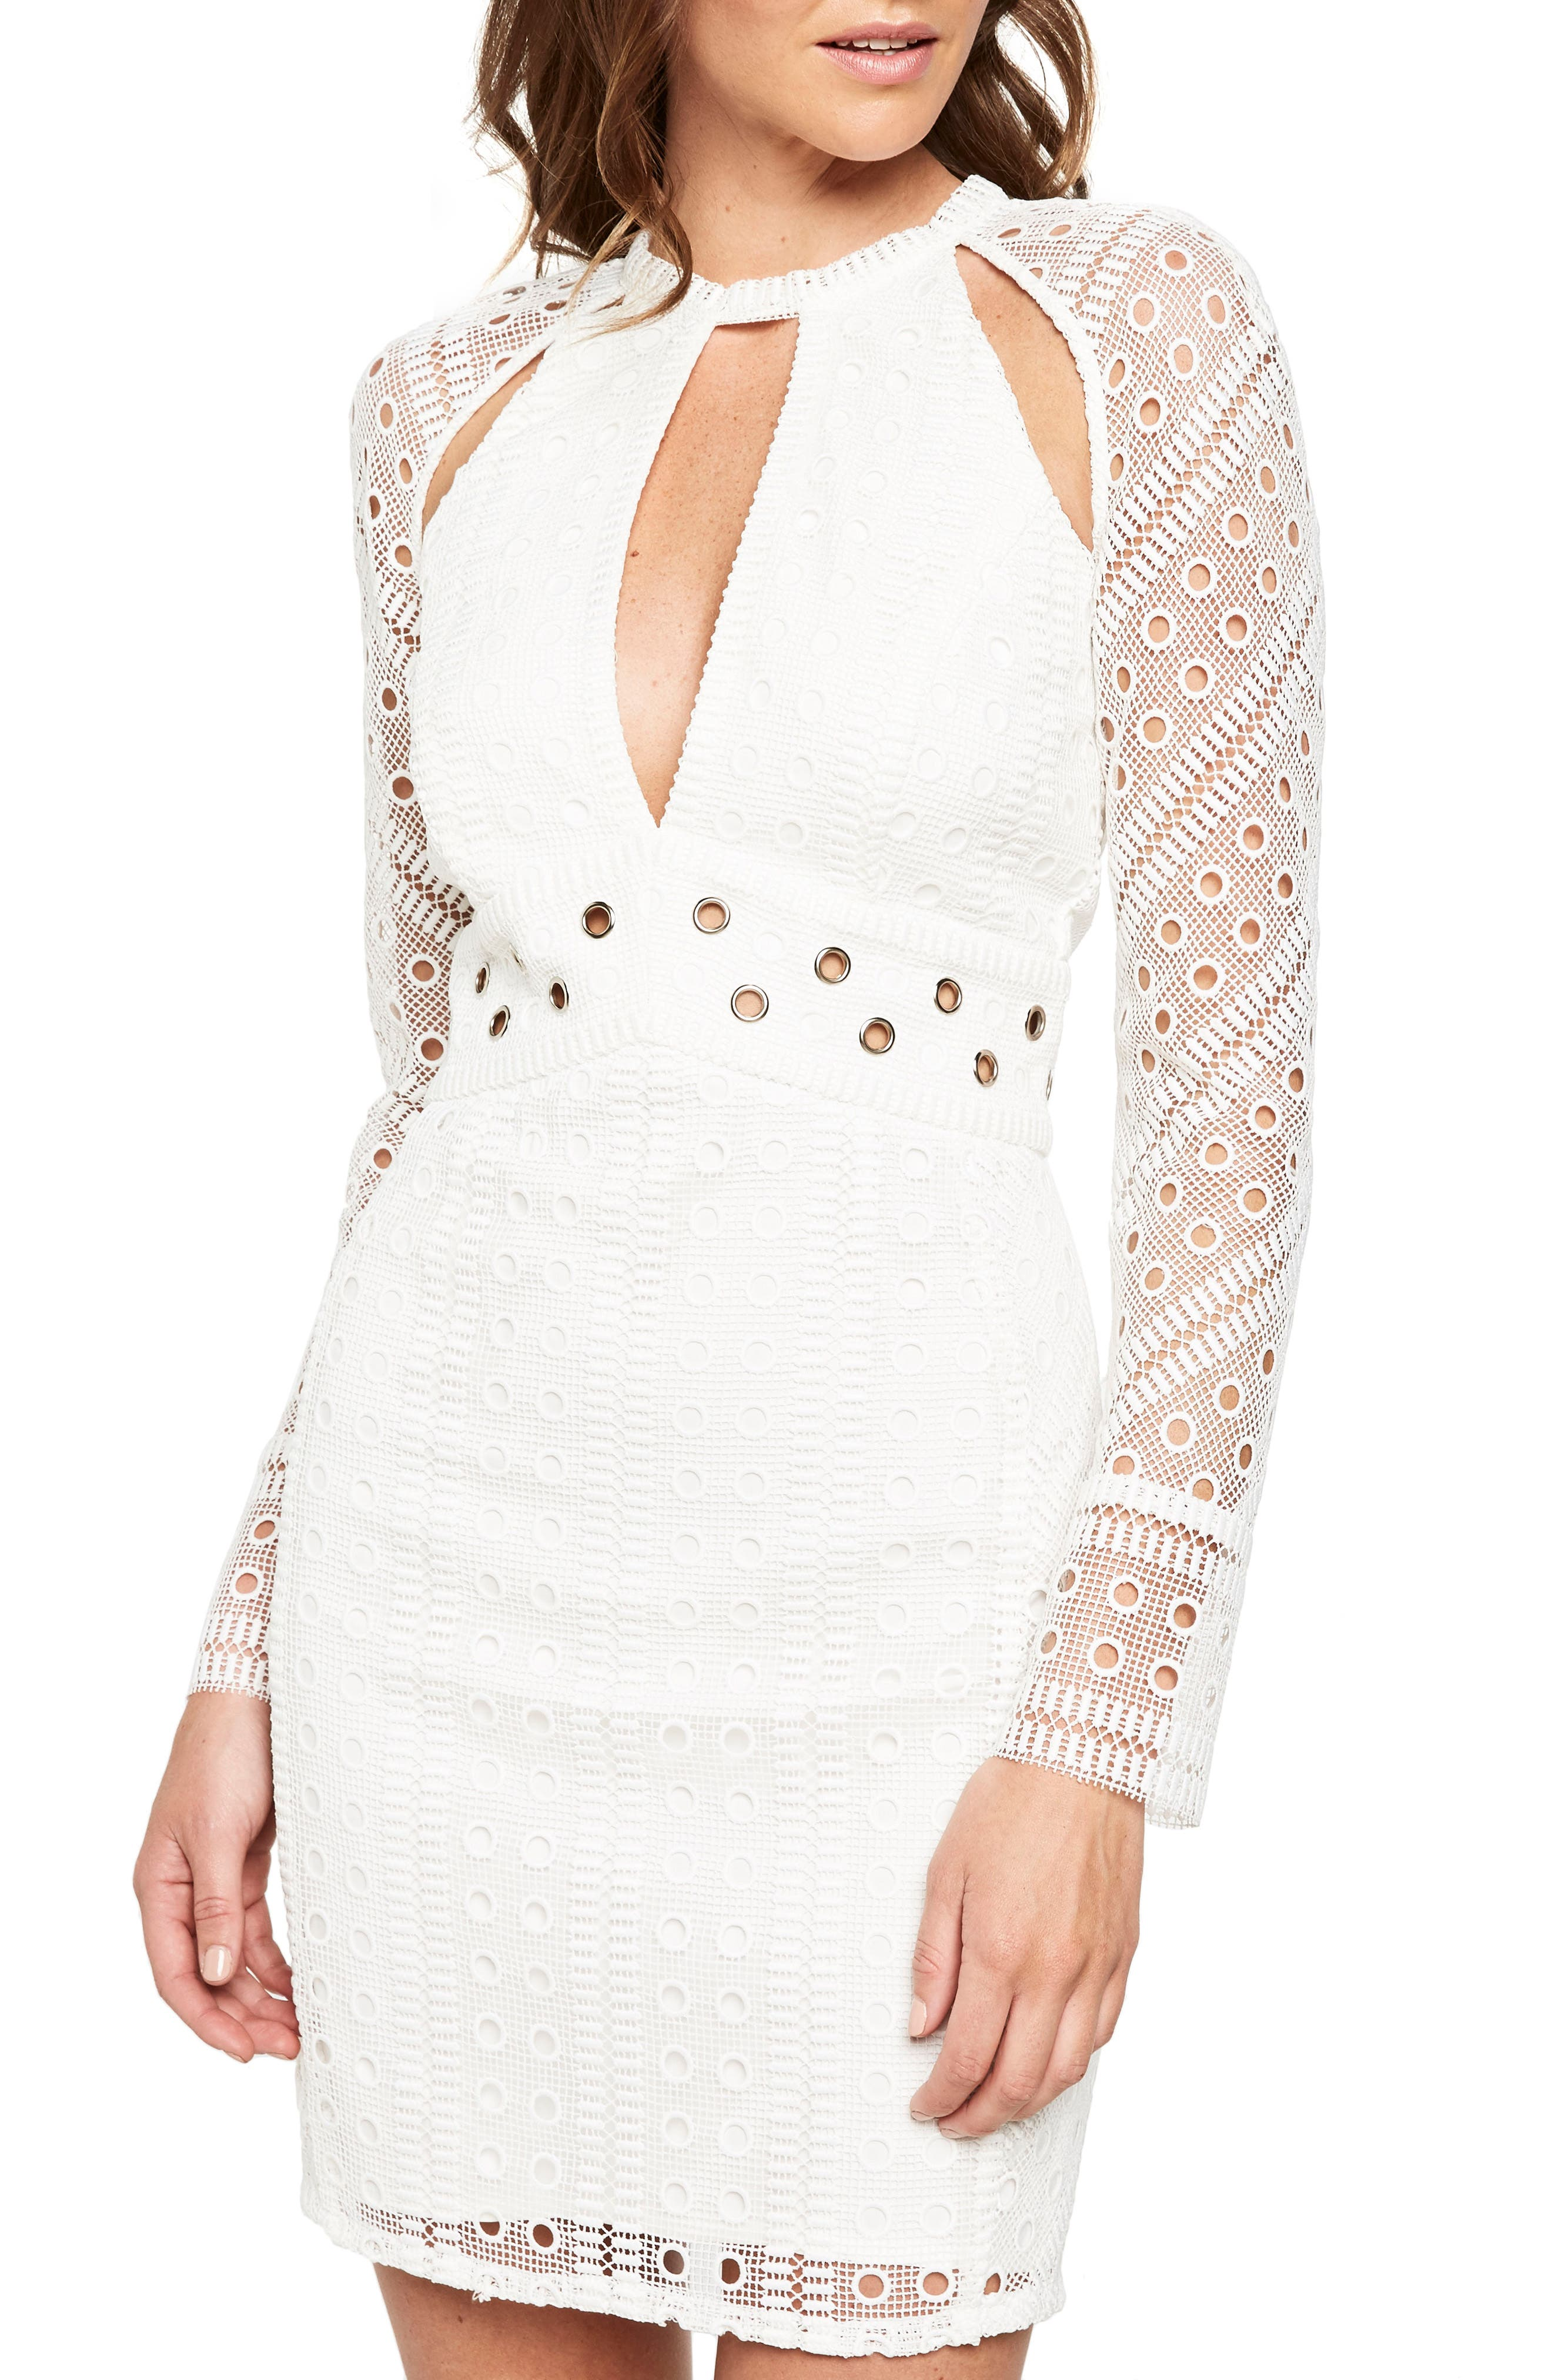 Grommet Detail Broderie Anglaise Dress,                         Main,                         color,